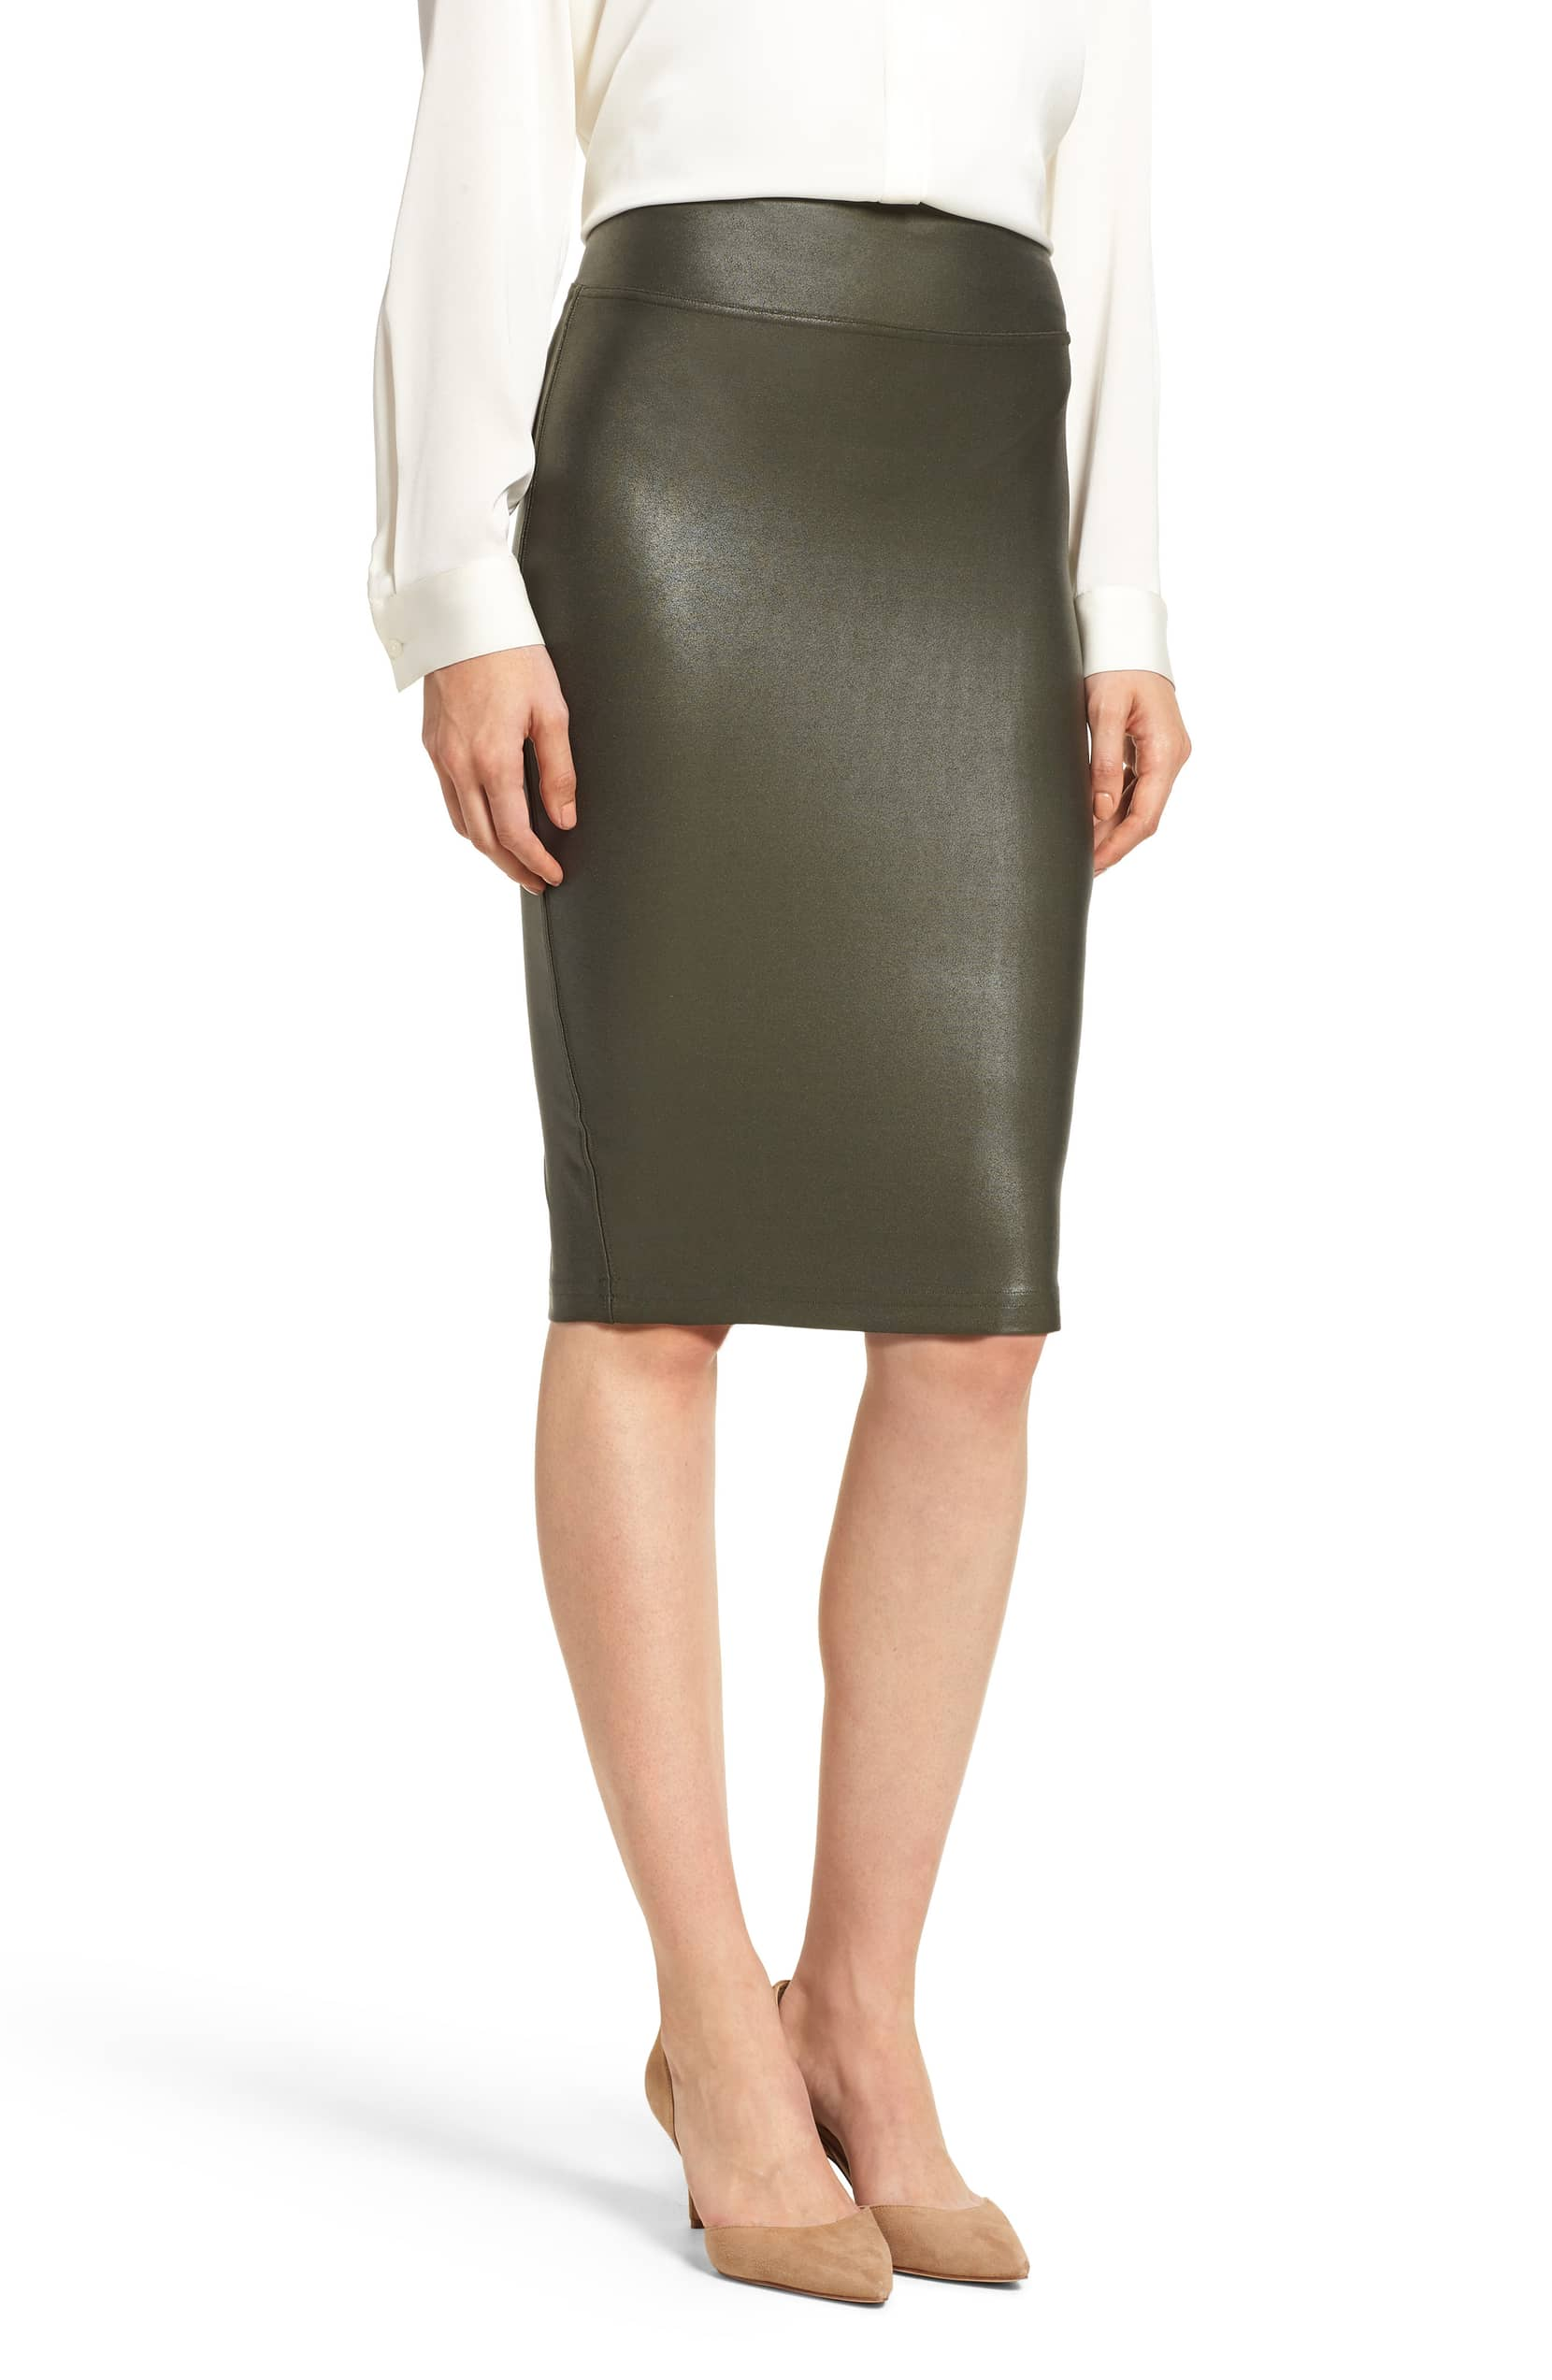 Shop This Spanx Faux Leather Skirt For Chic Shapewear Apparel